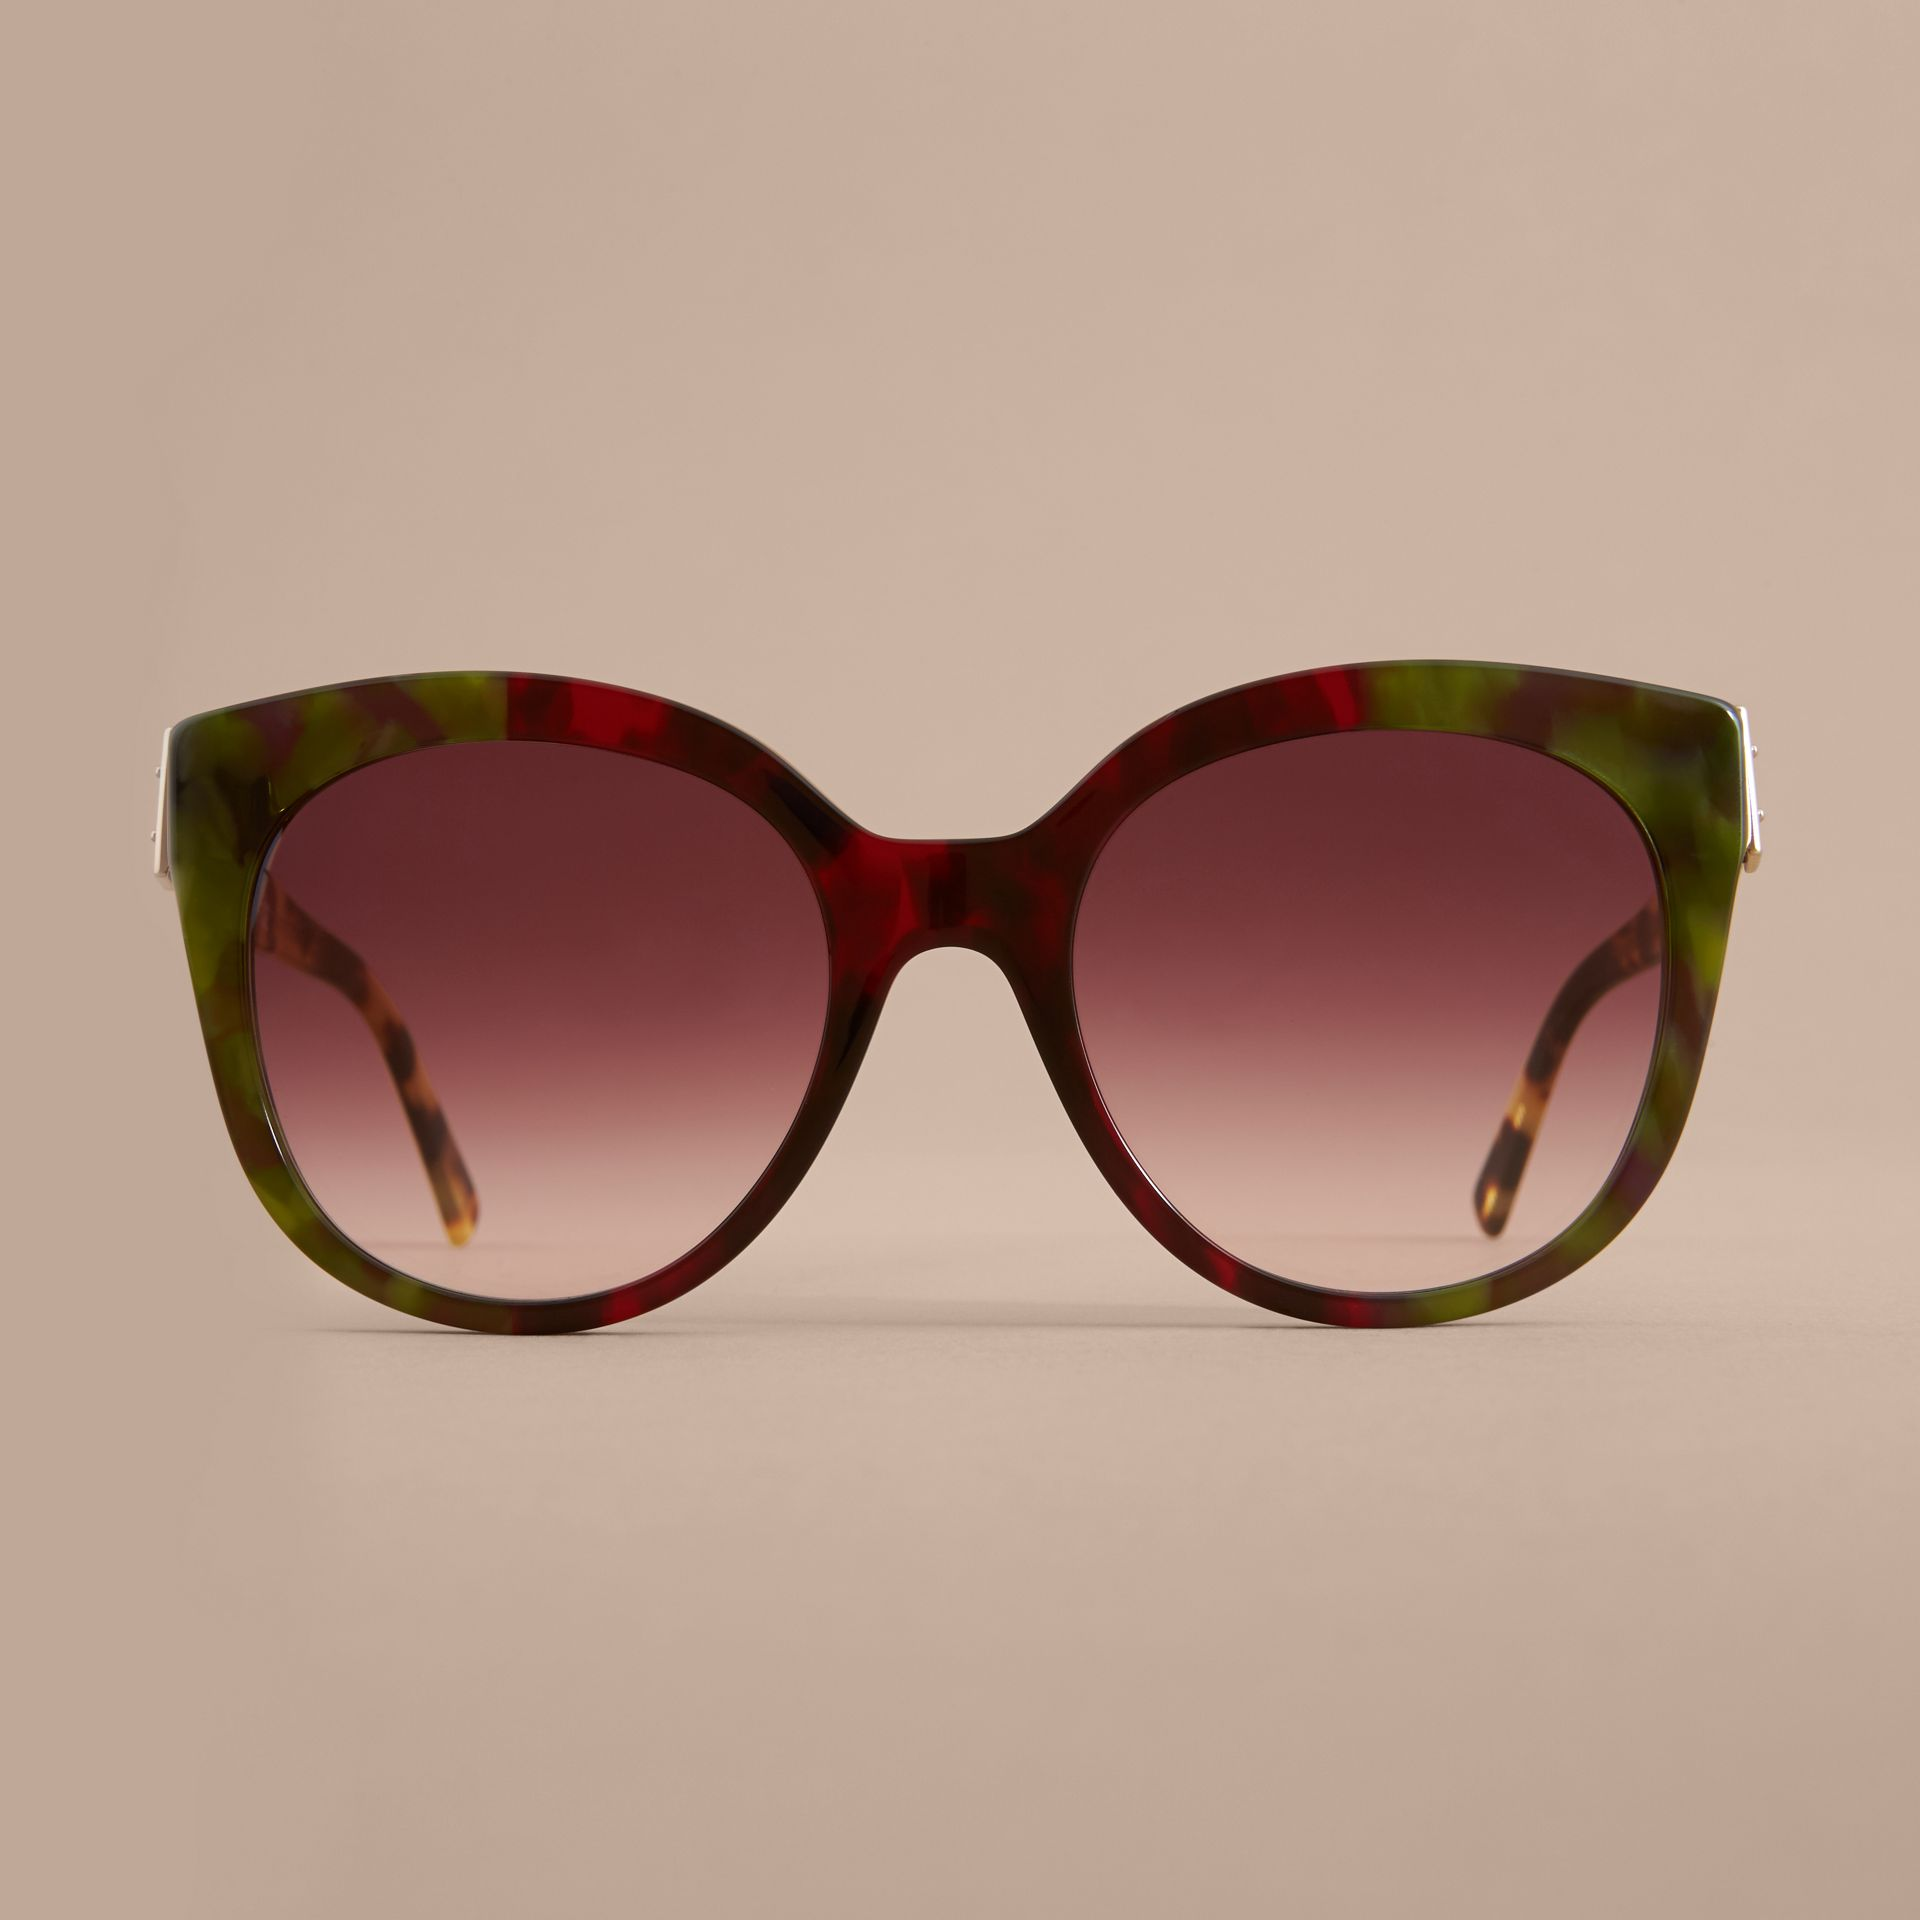 Buckle Detail Cat-eye Frame Sunglasses in Cardinal Red - Women | Burberry Canada - gallery image 2